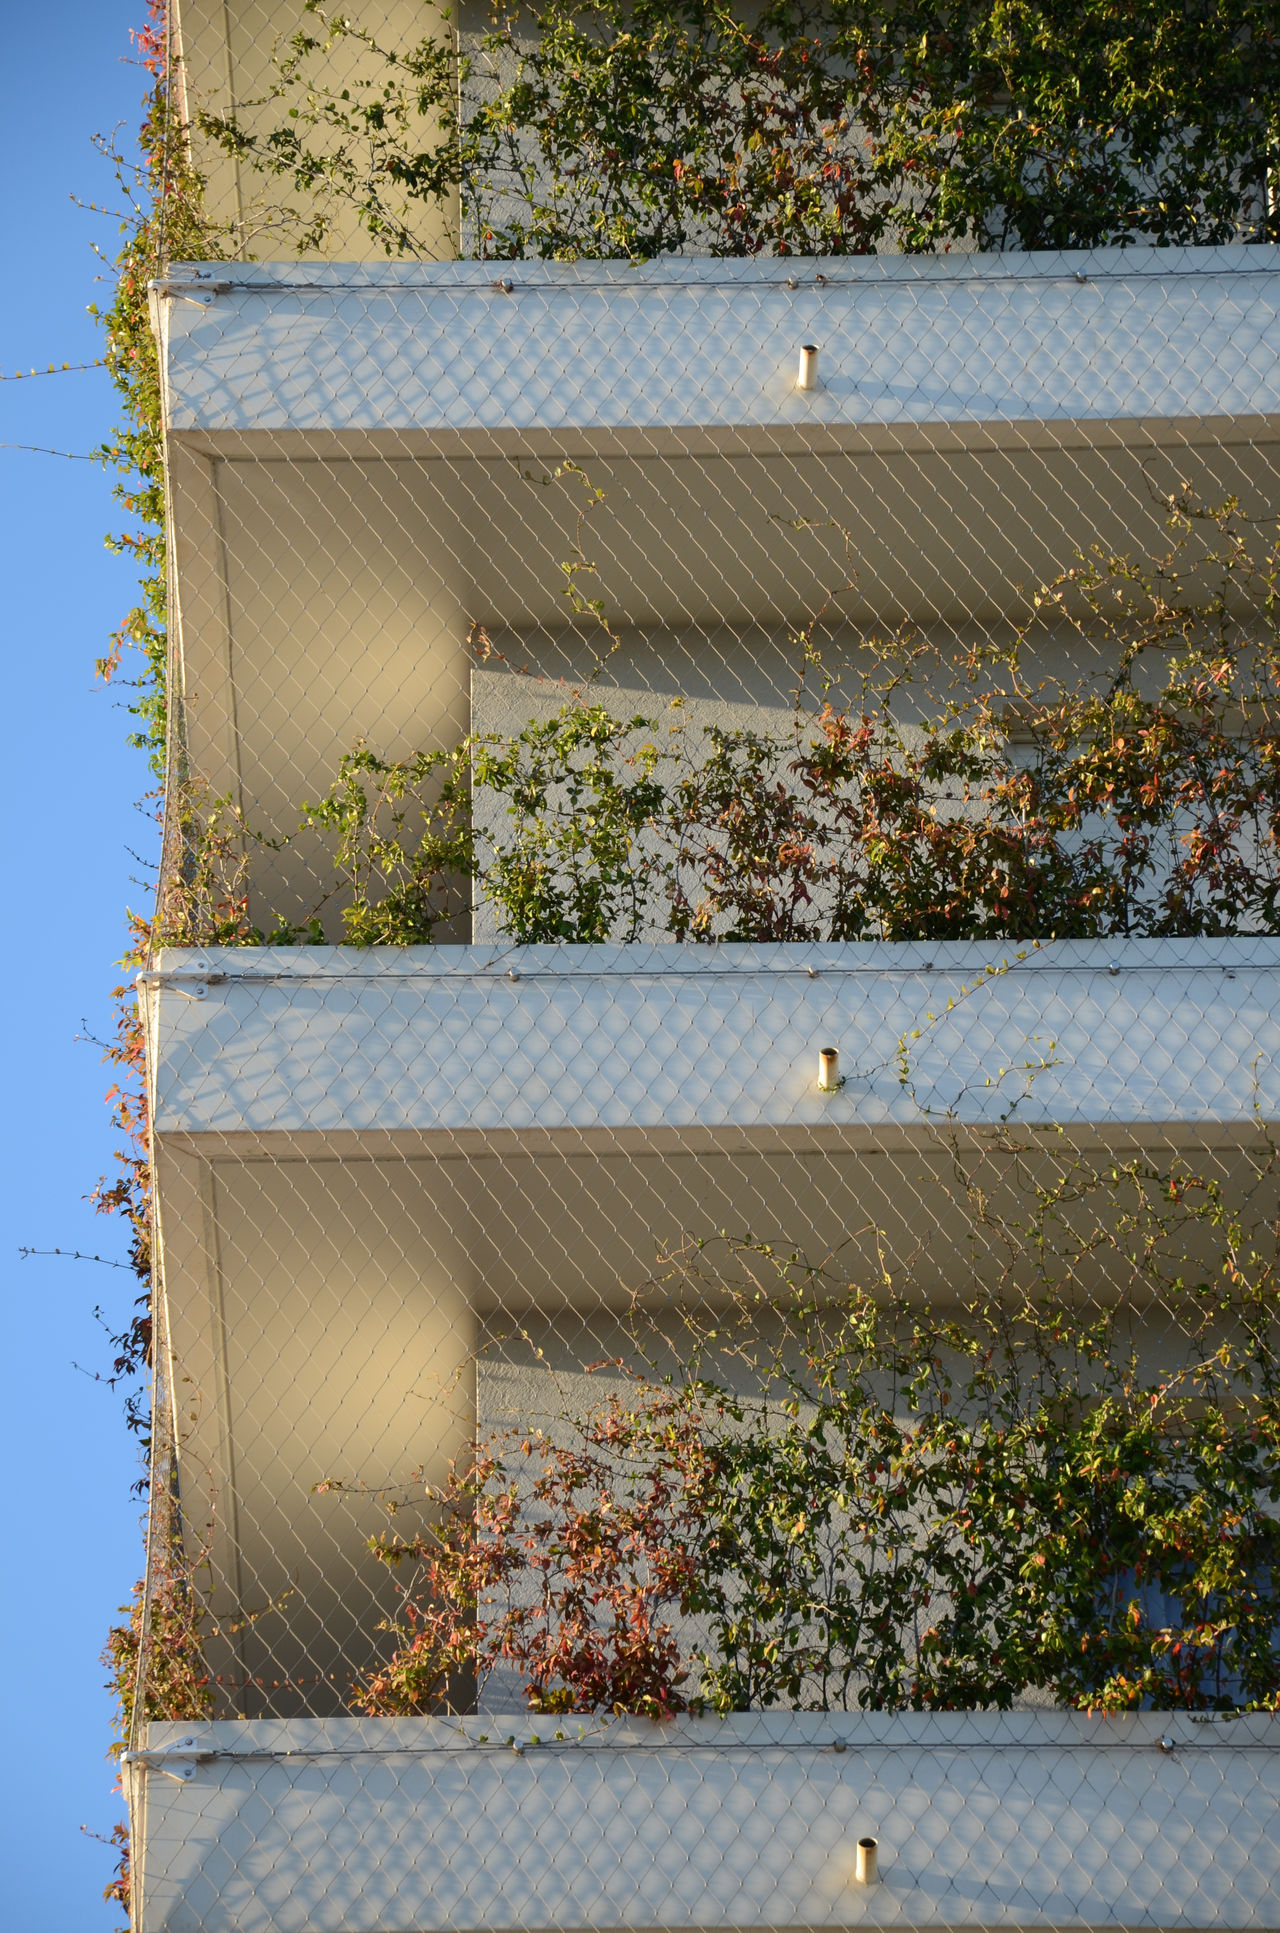 Architecture Balcony Close-up Day Green Wall Light And Shadow Nature No People Outdoors Sky Sunlight Sunny Sustainable Urban Geometry Grilling